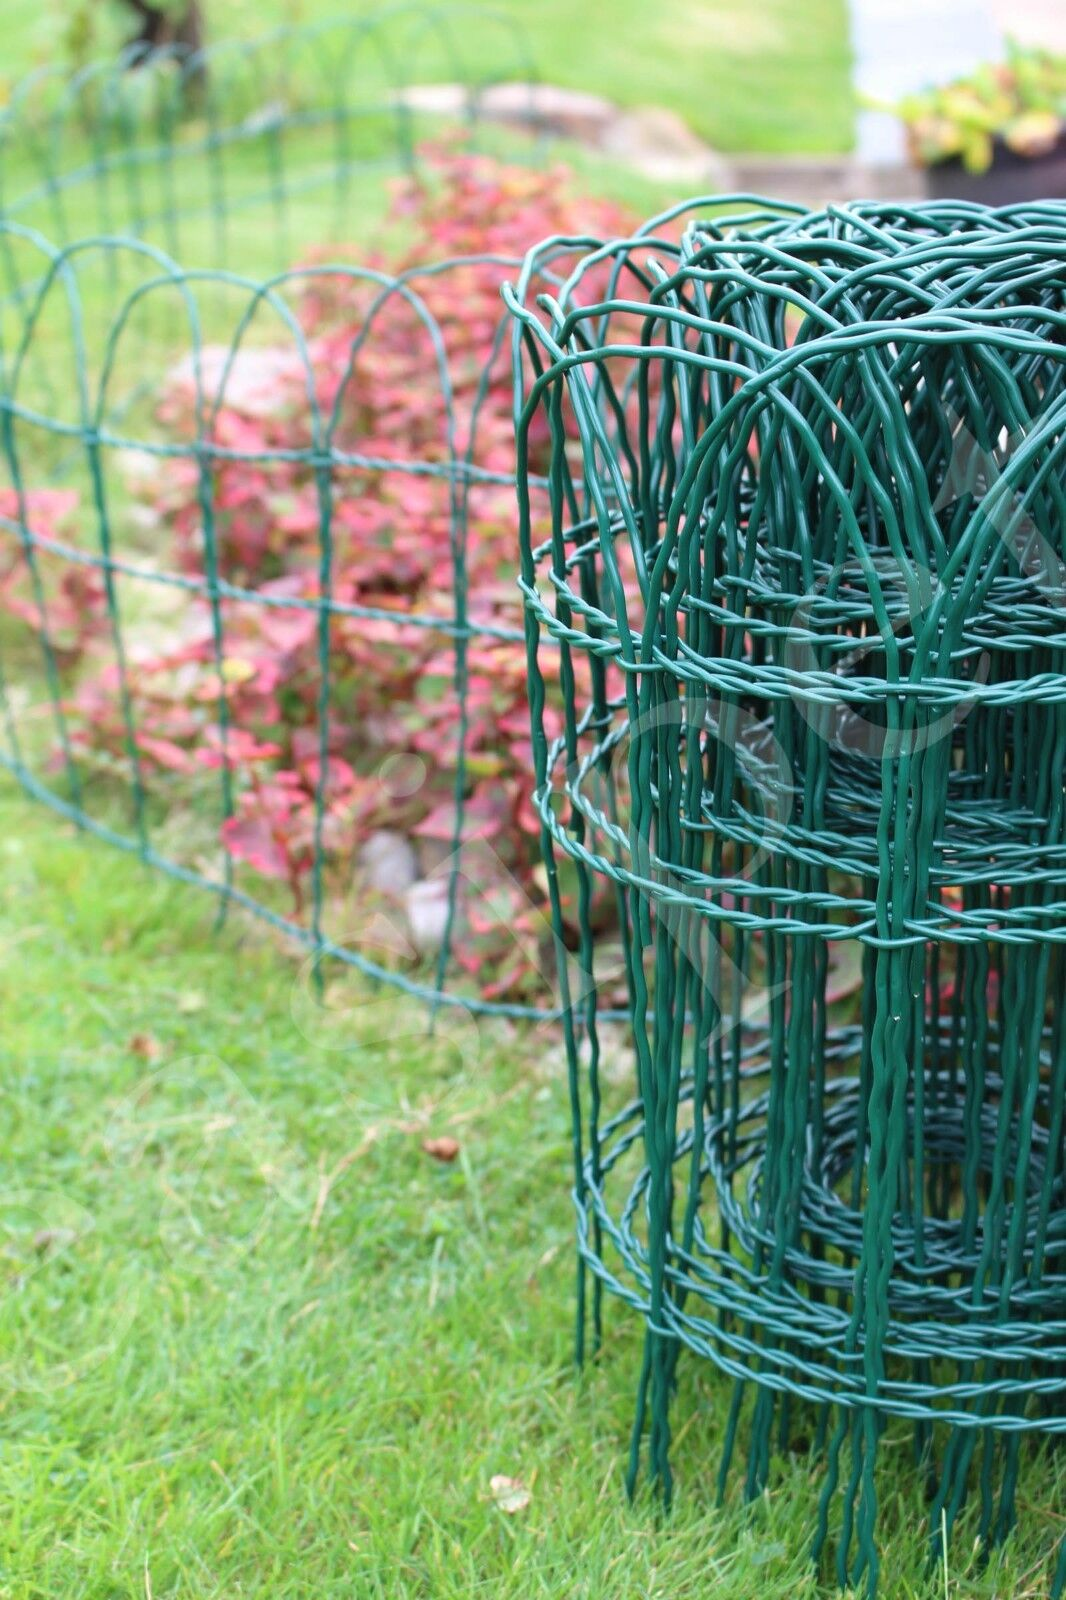 garden fence - Garden Border Fence Lawn Edging 10m Green PVC Coated Wire Edge Fencing 3 Sizes